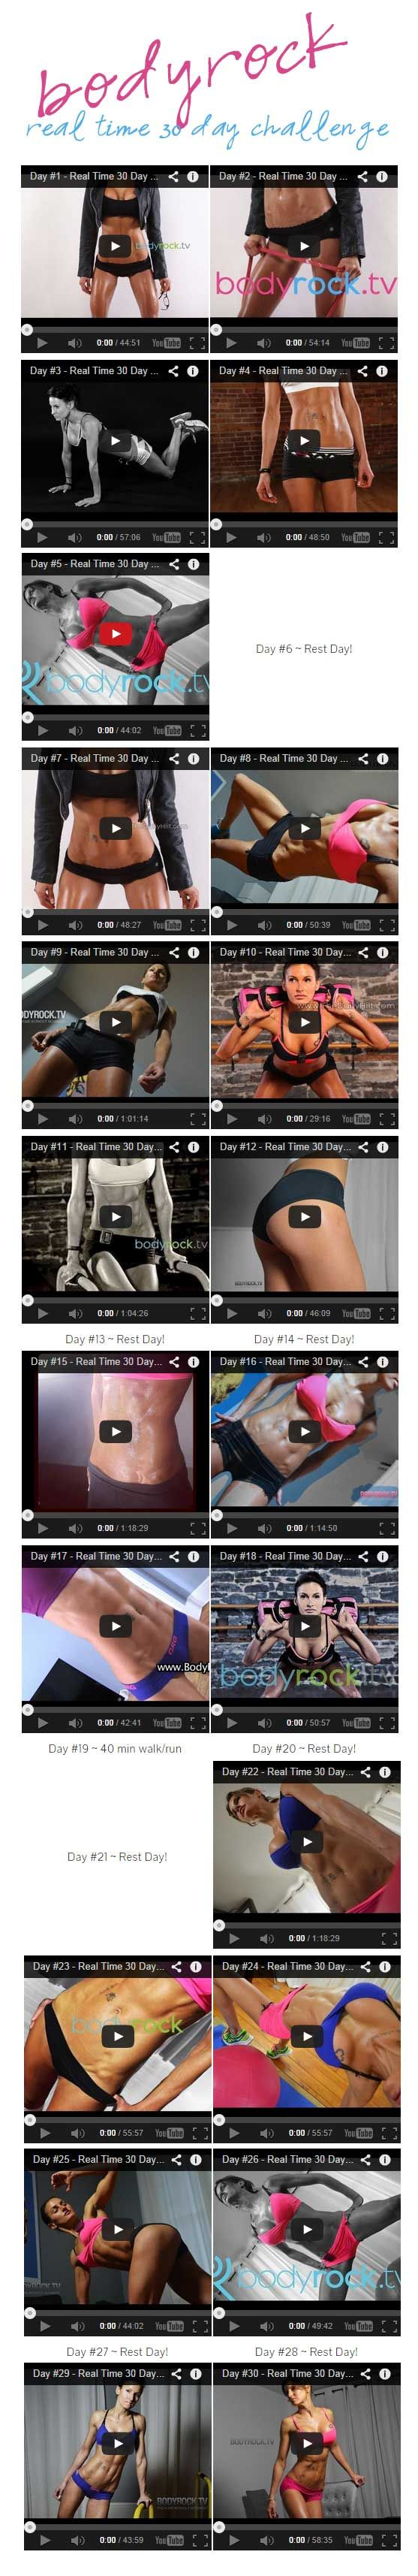 BodyRock Real Time 30 Day Challenge healthandfitnessnewswire.com